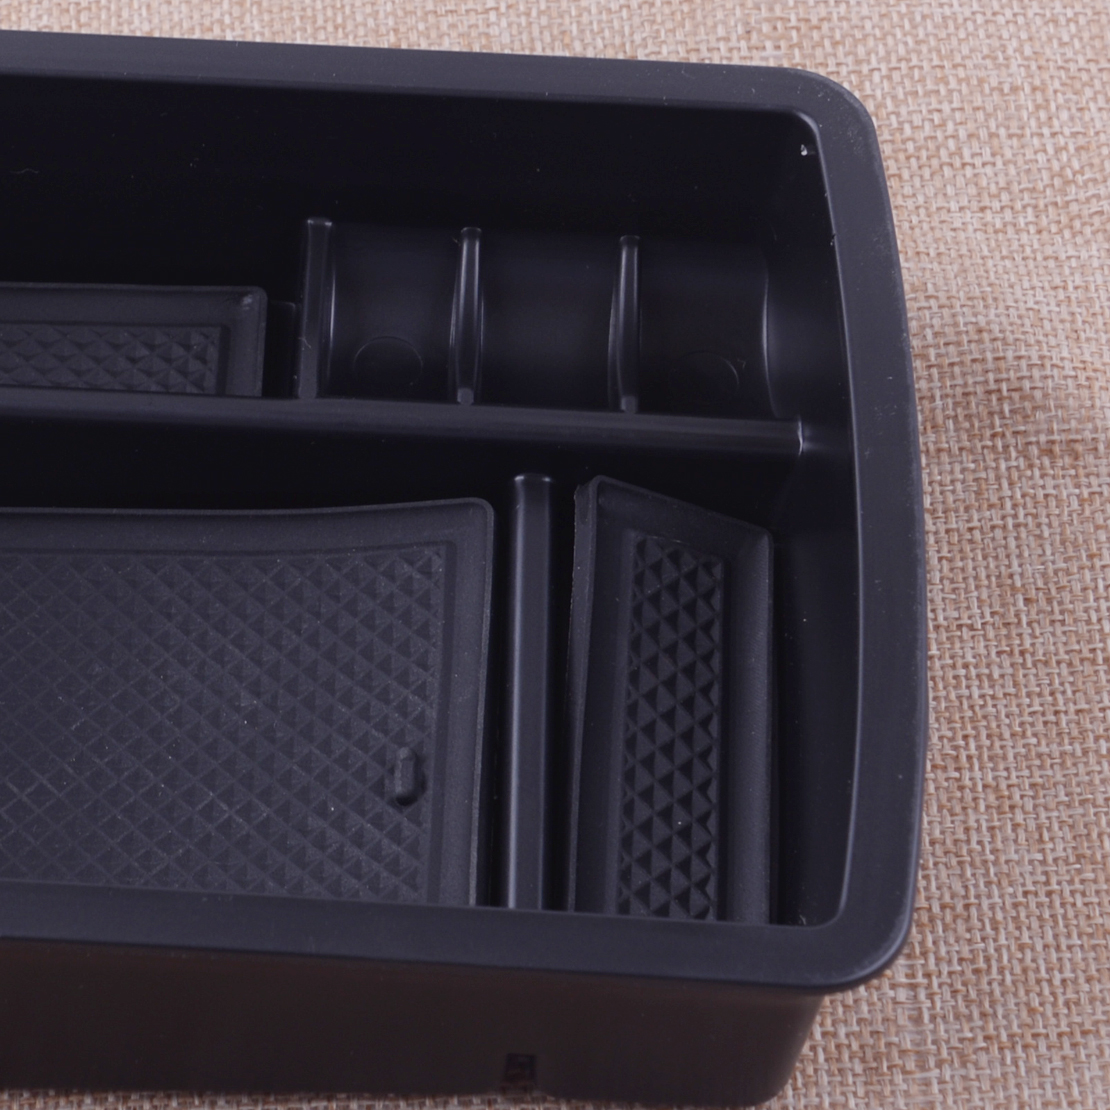 thumbnail 3 - Interior Center Console Armrest Storage Tray Holder Fit for VW Golf 7 MK7 14-18